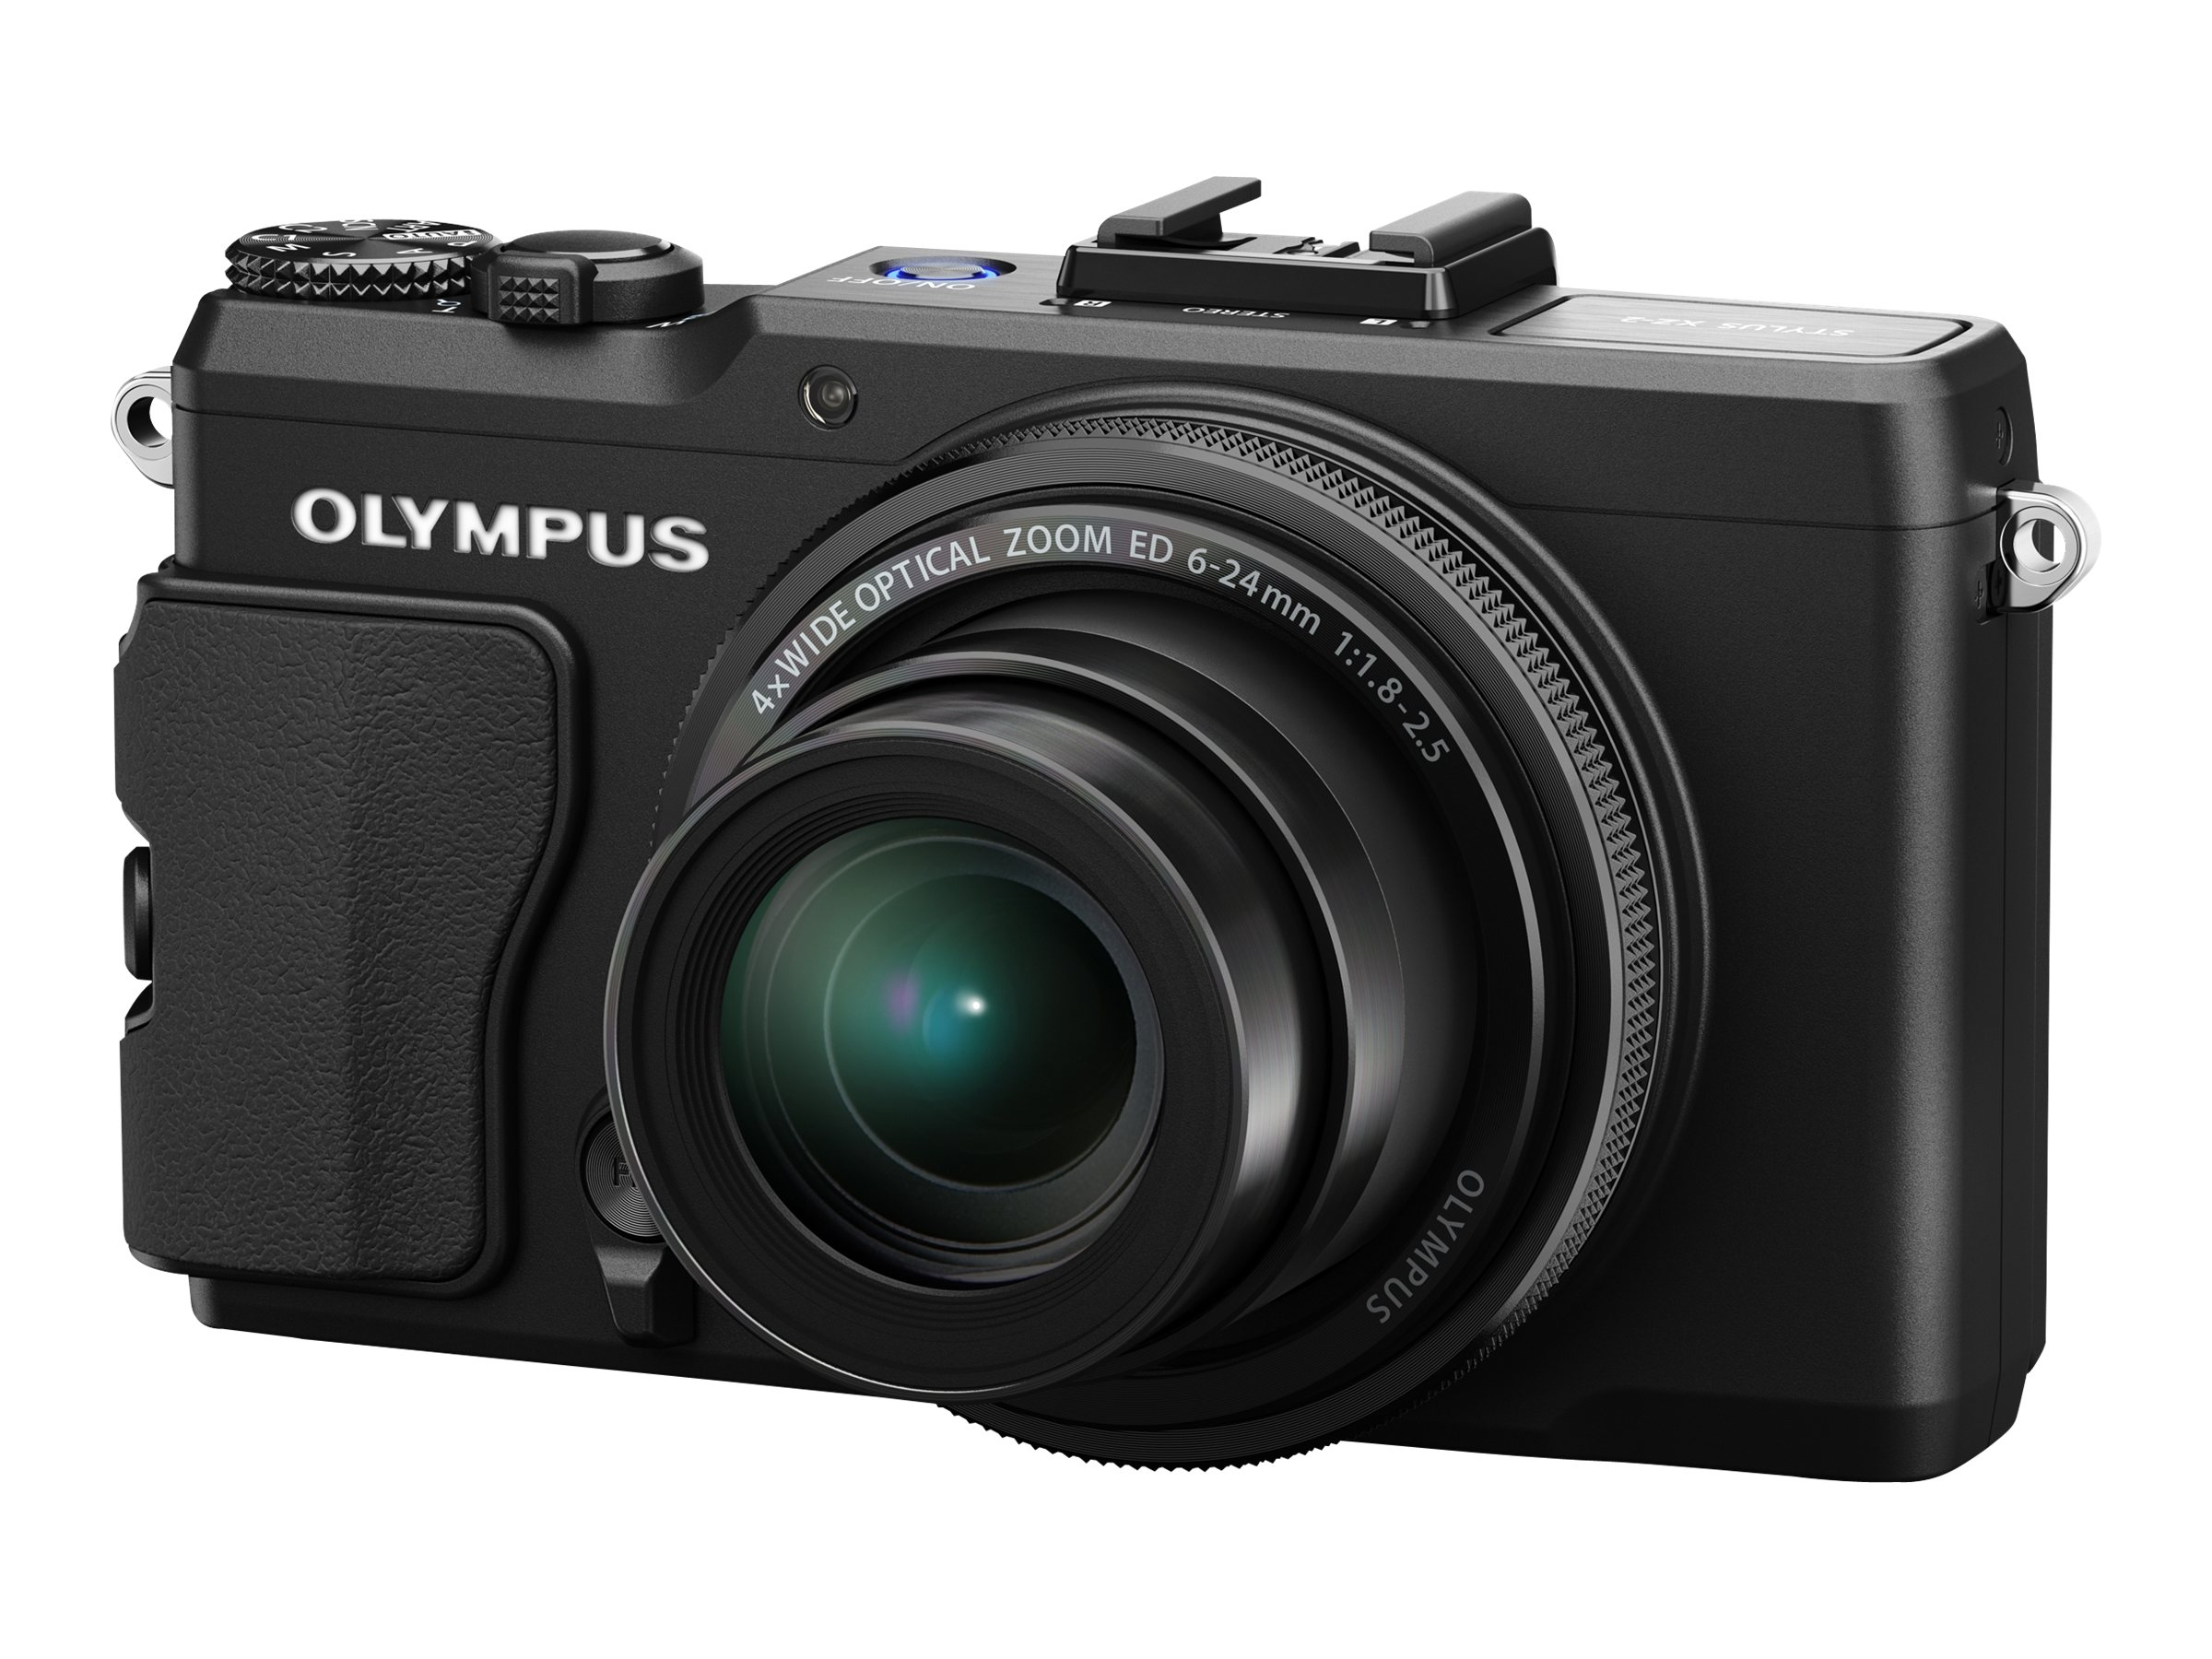 Olympus STYLUS XZ-2 iHS Digital Camera, 12MP, 4x Zoom, Black